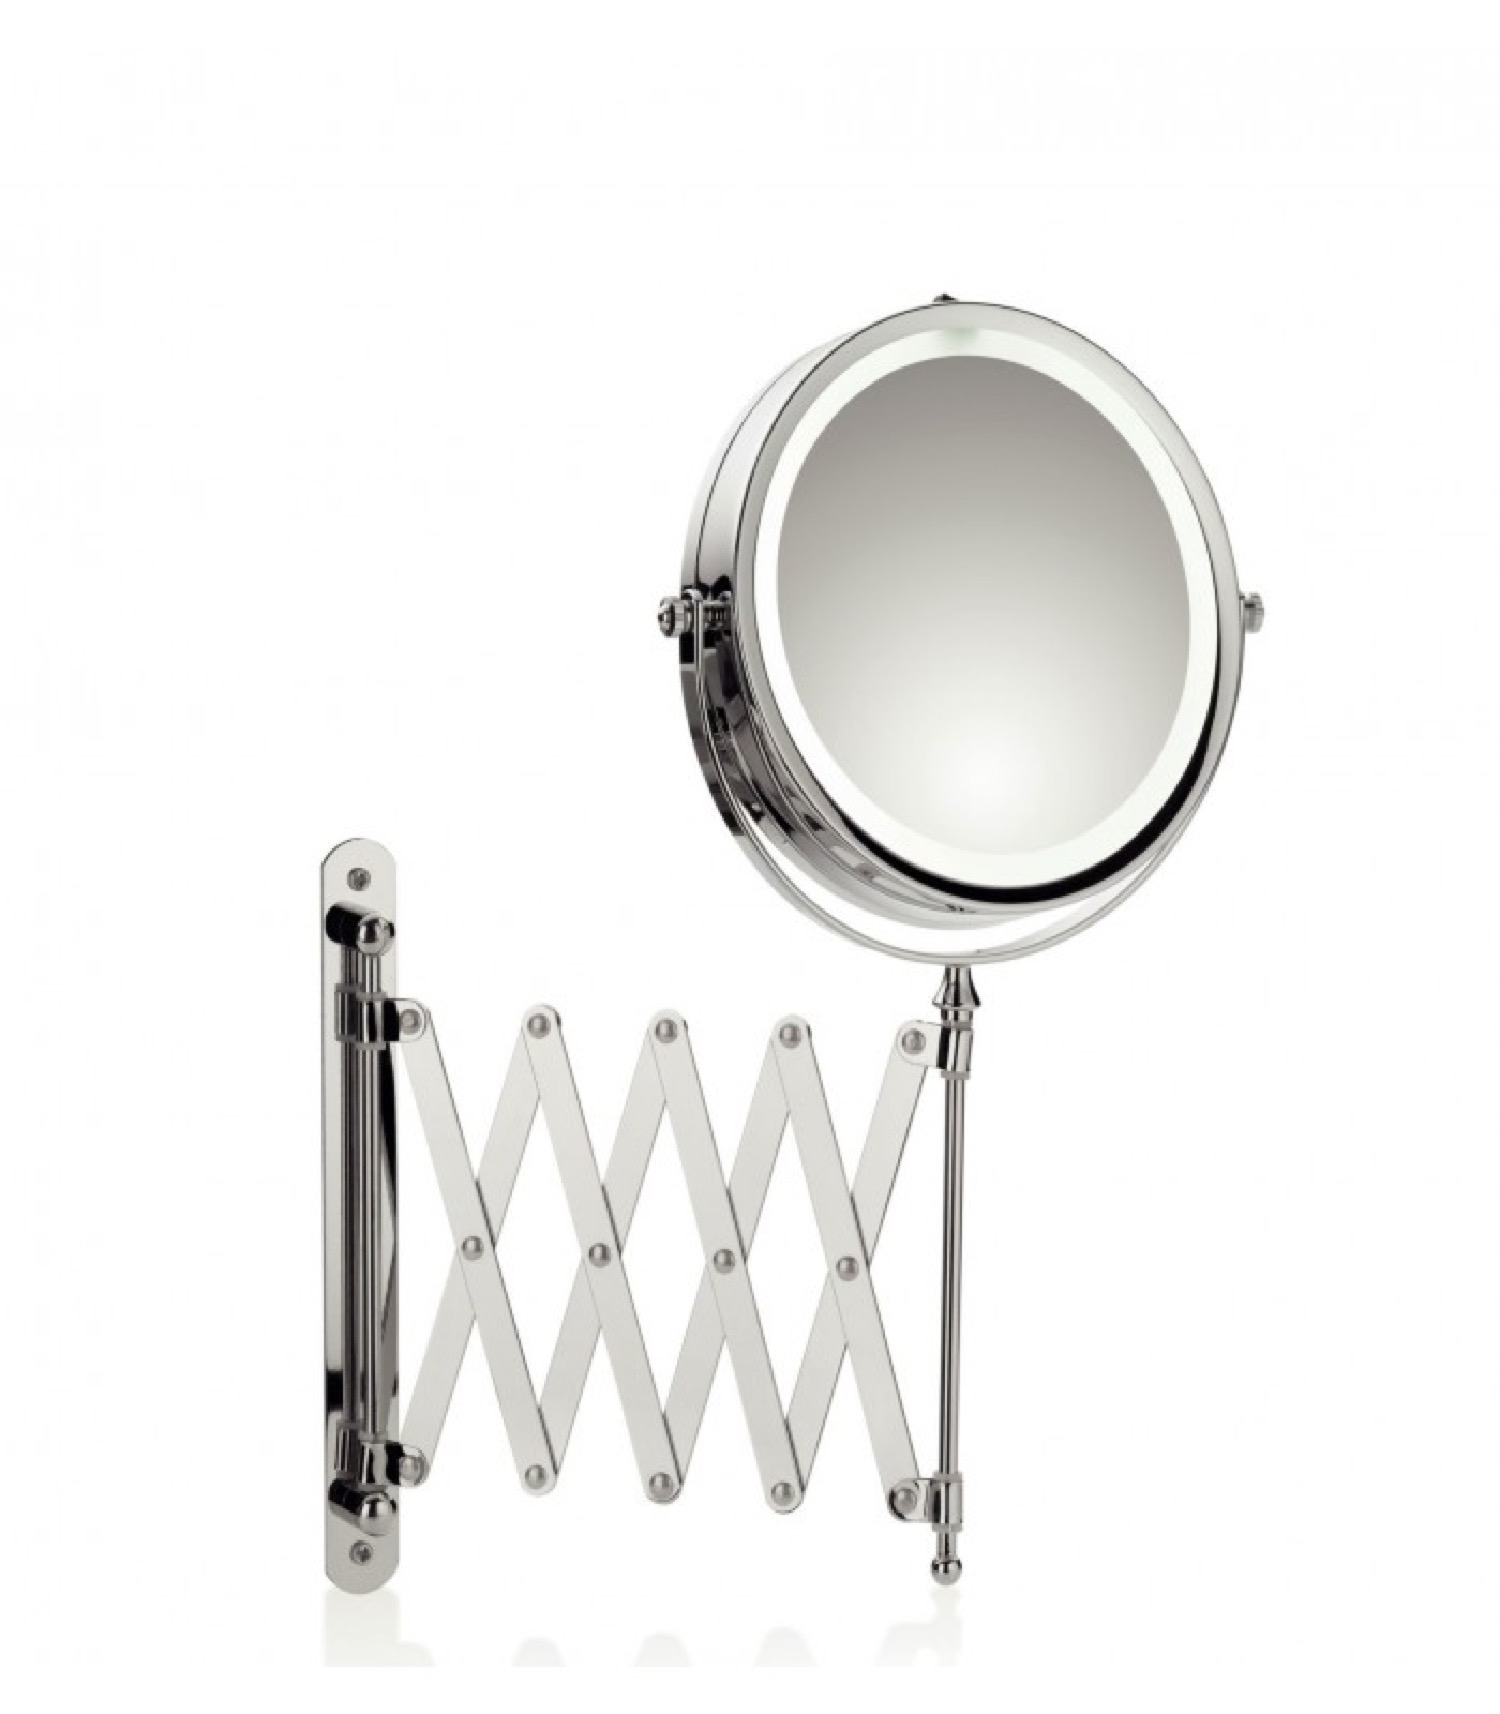 Miroir rond grossissant mural lumineux led x5